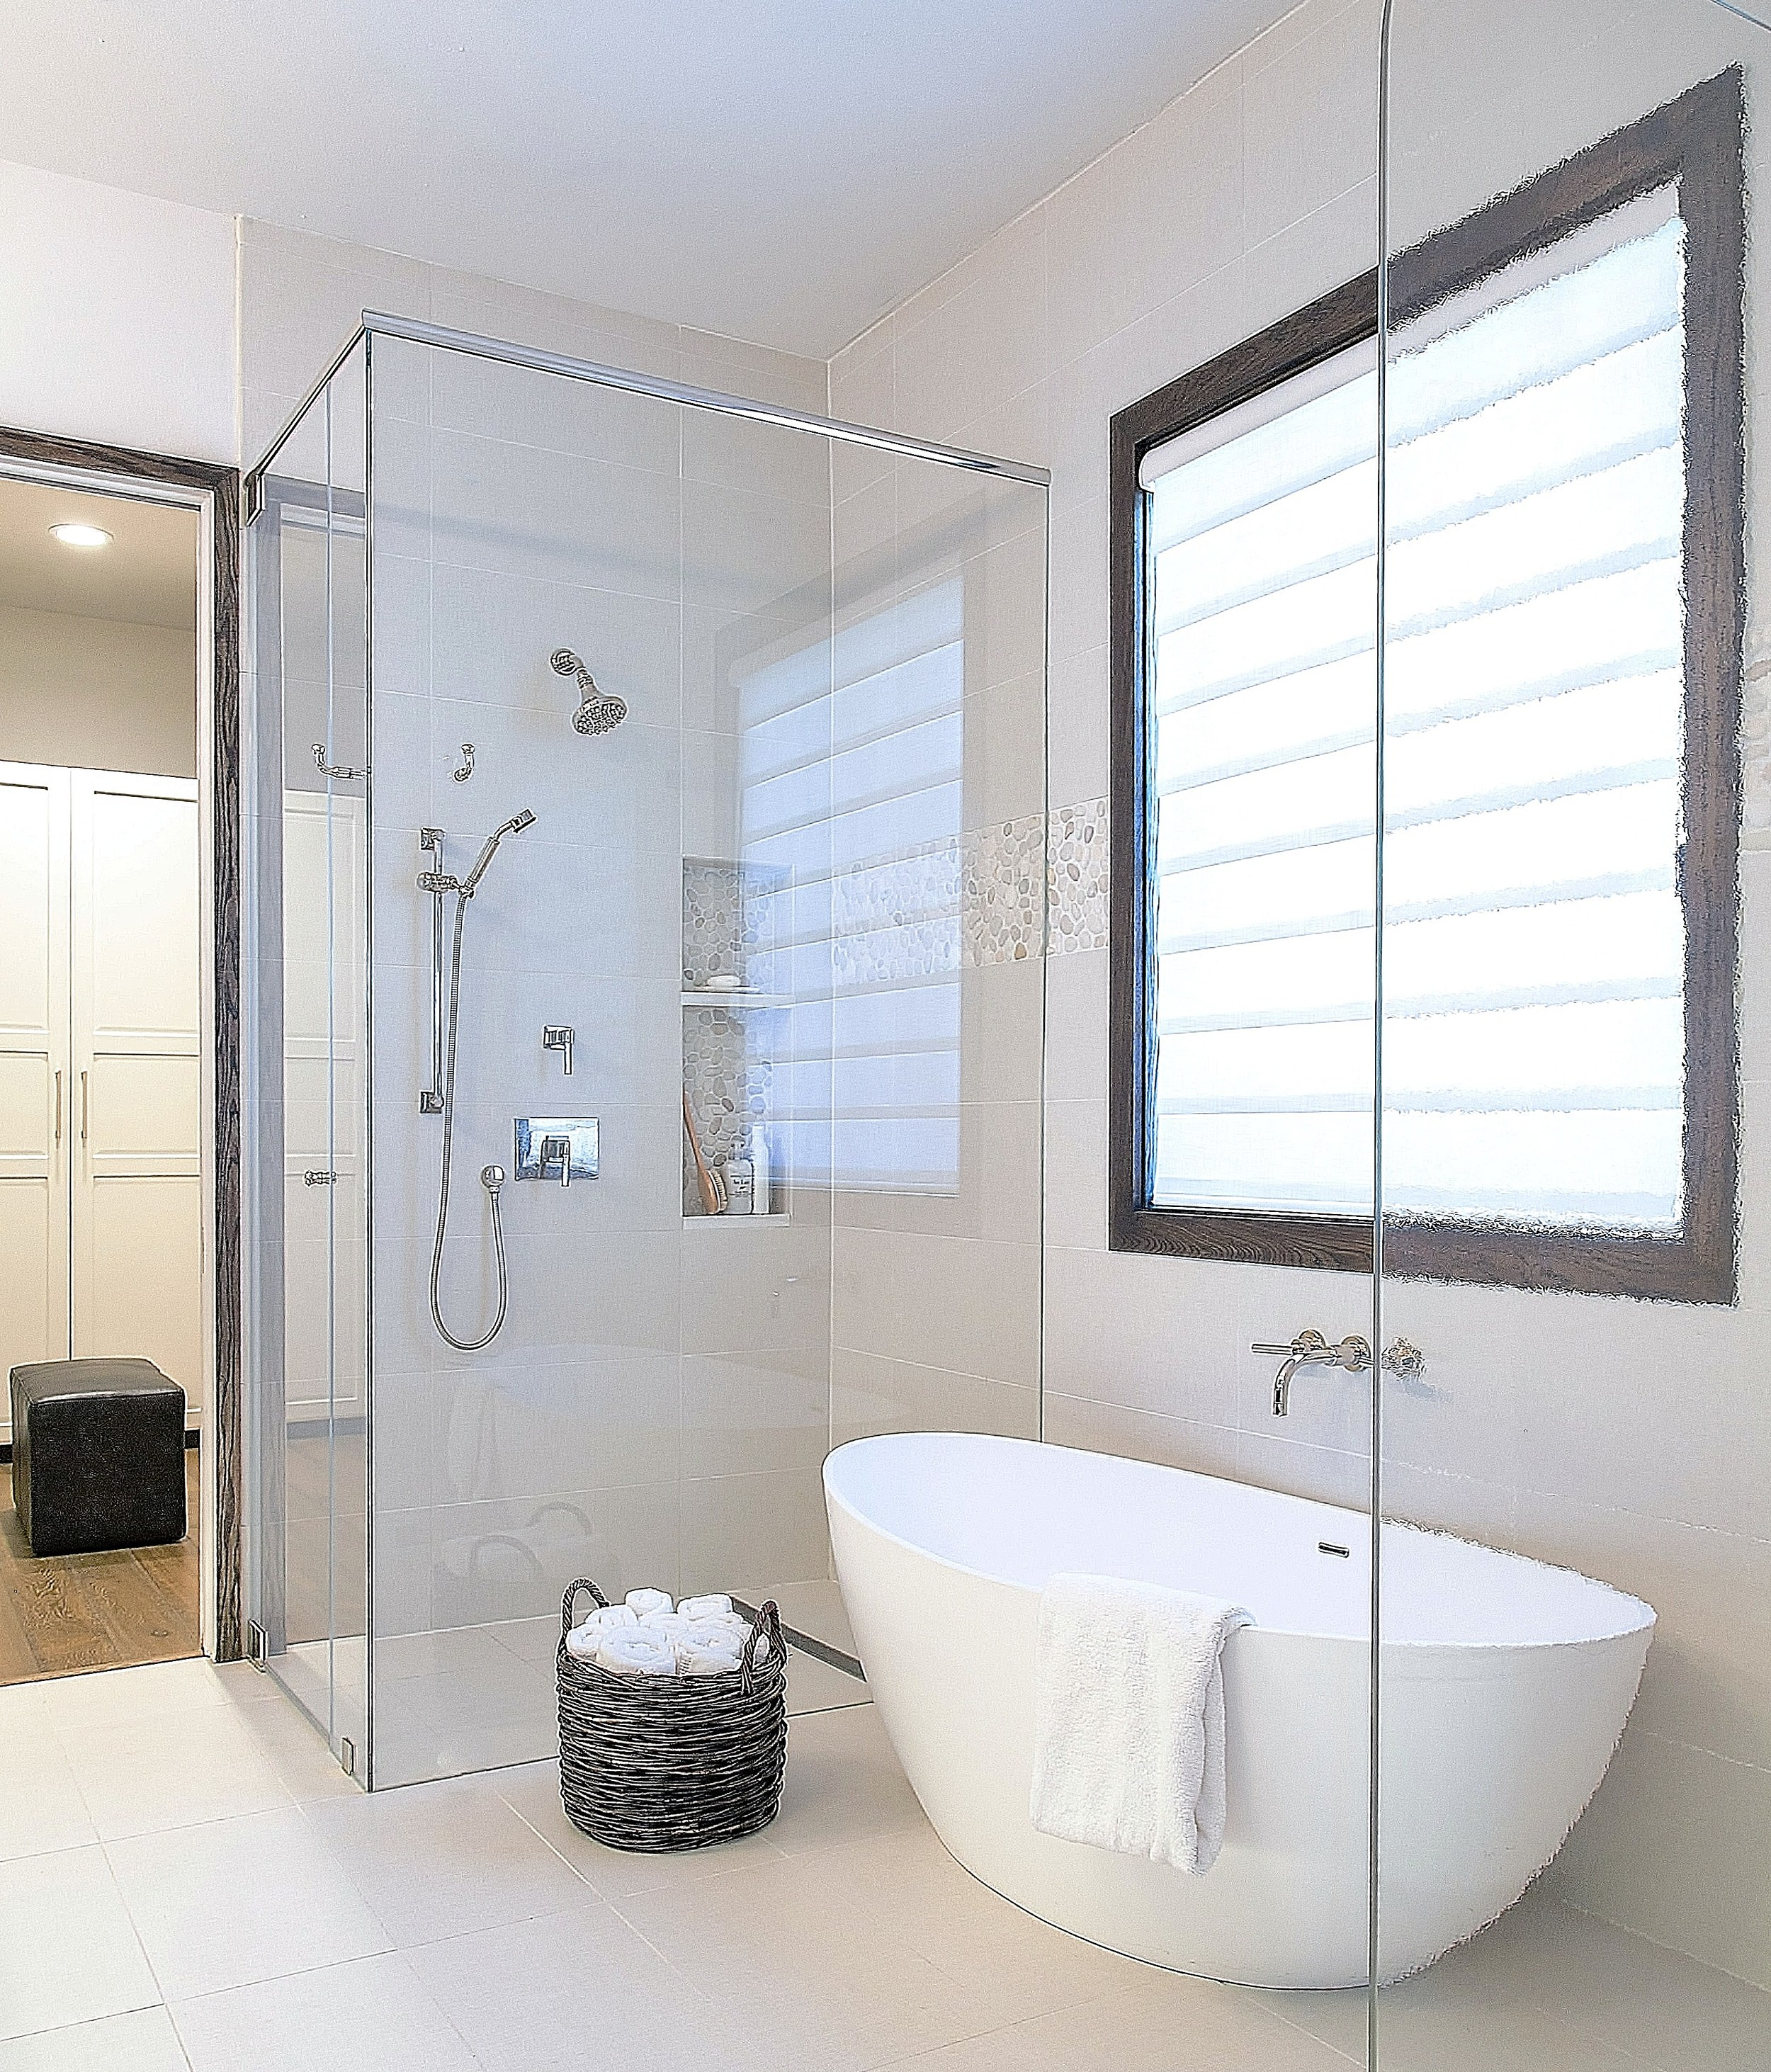 Top 10 Bathroom Design Trends, Guaranteed To Freshen Up